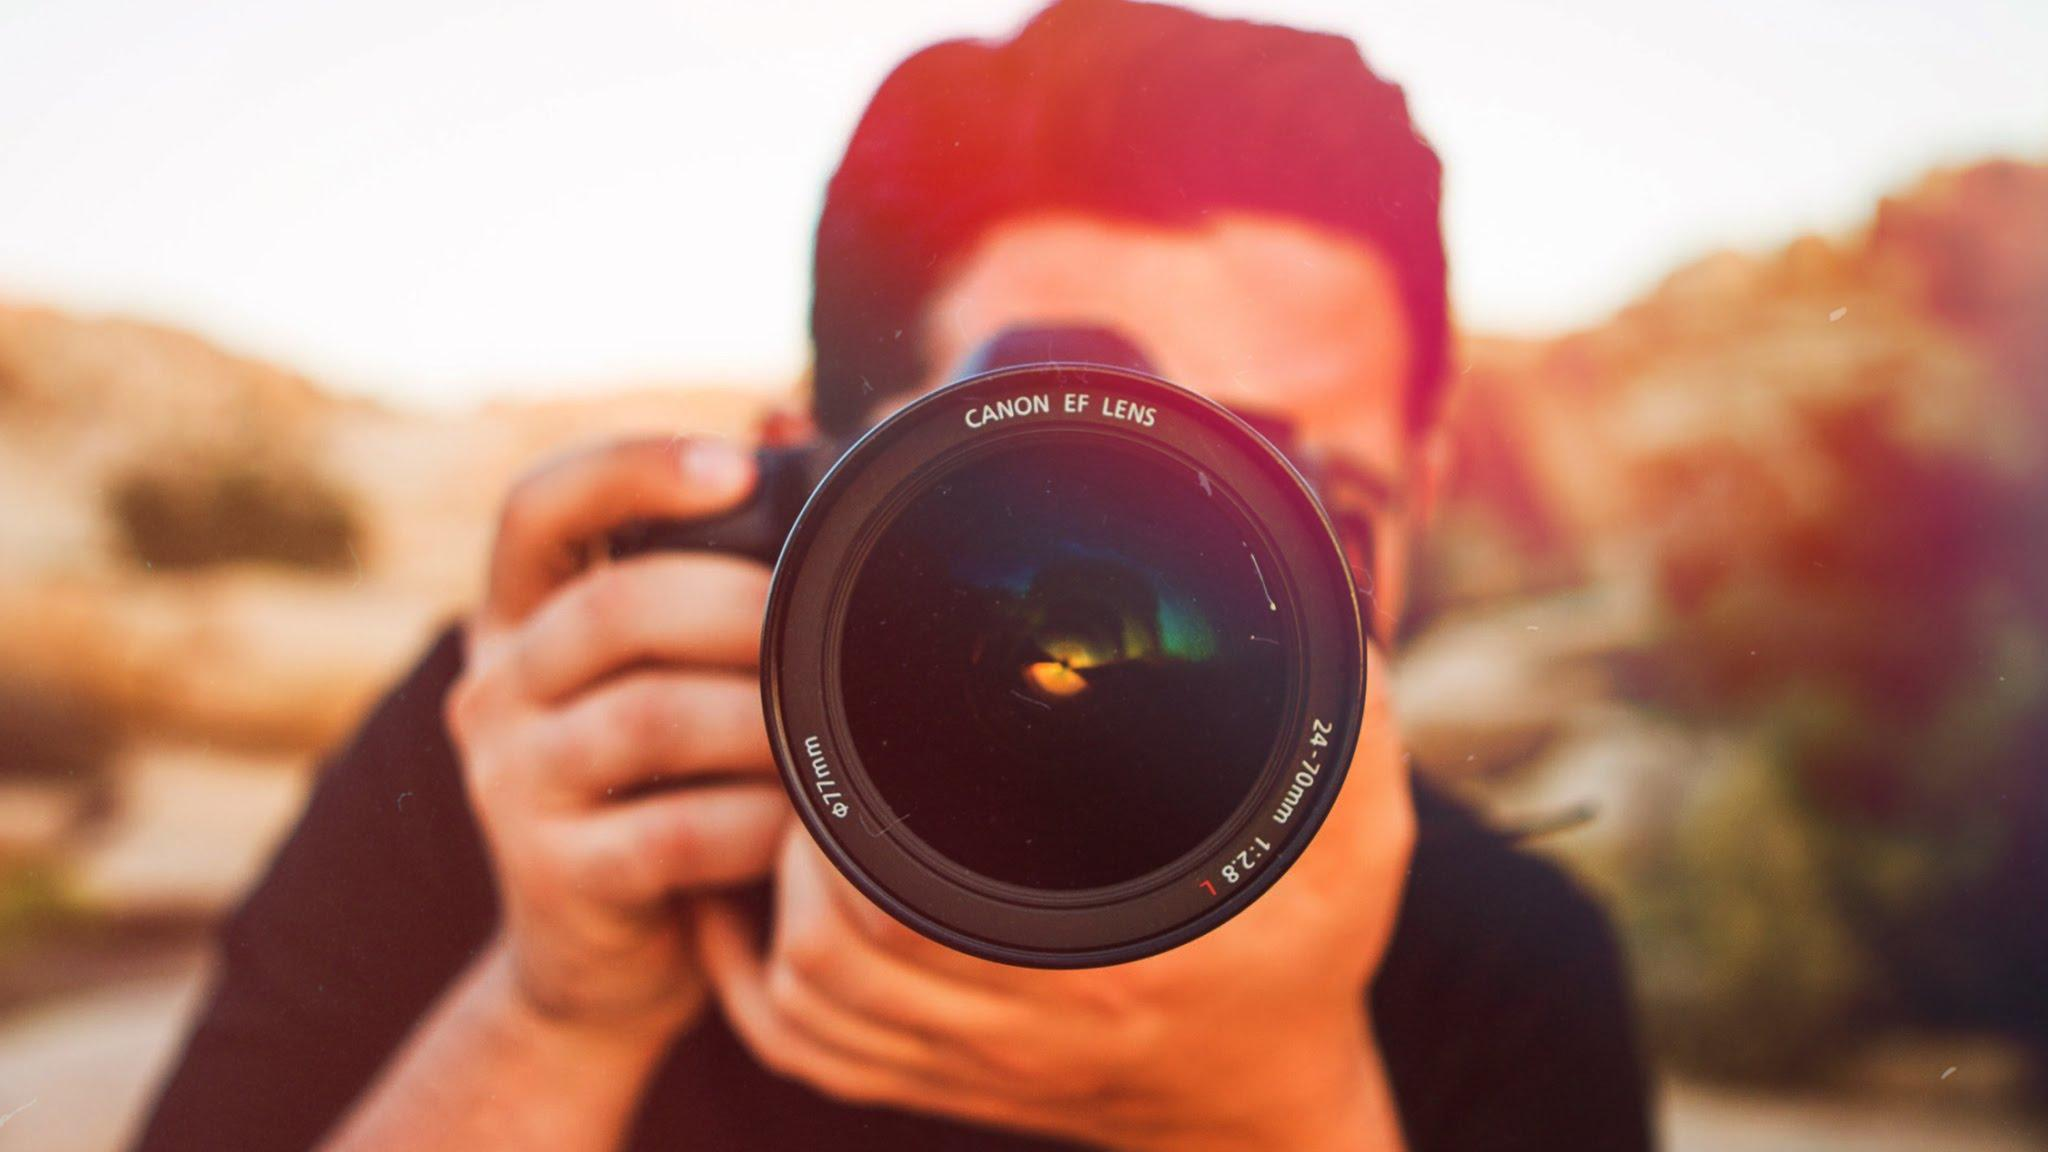 Learn to be a professional photographer The Professional Photographers Digital Workflow